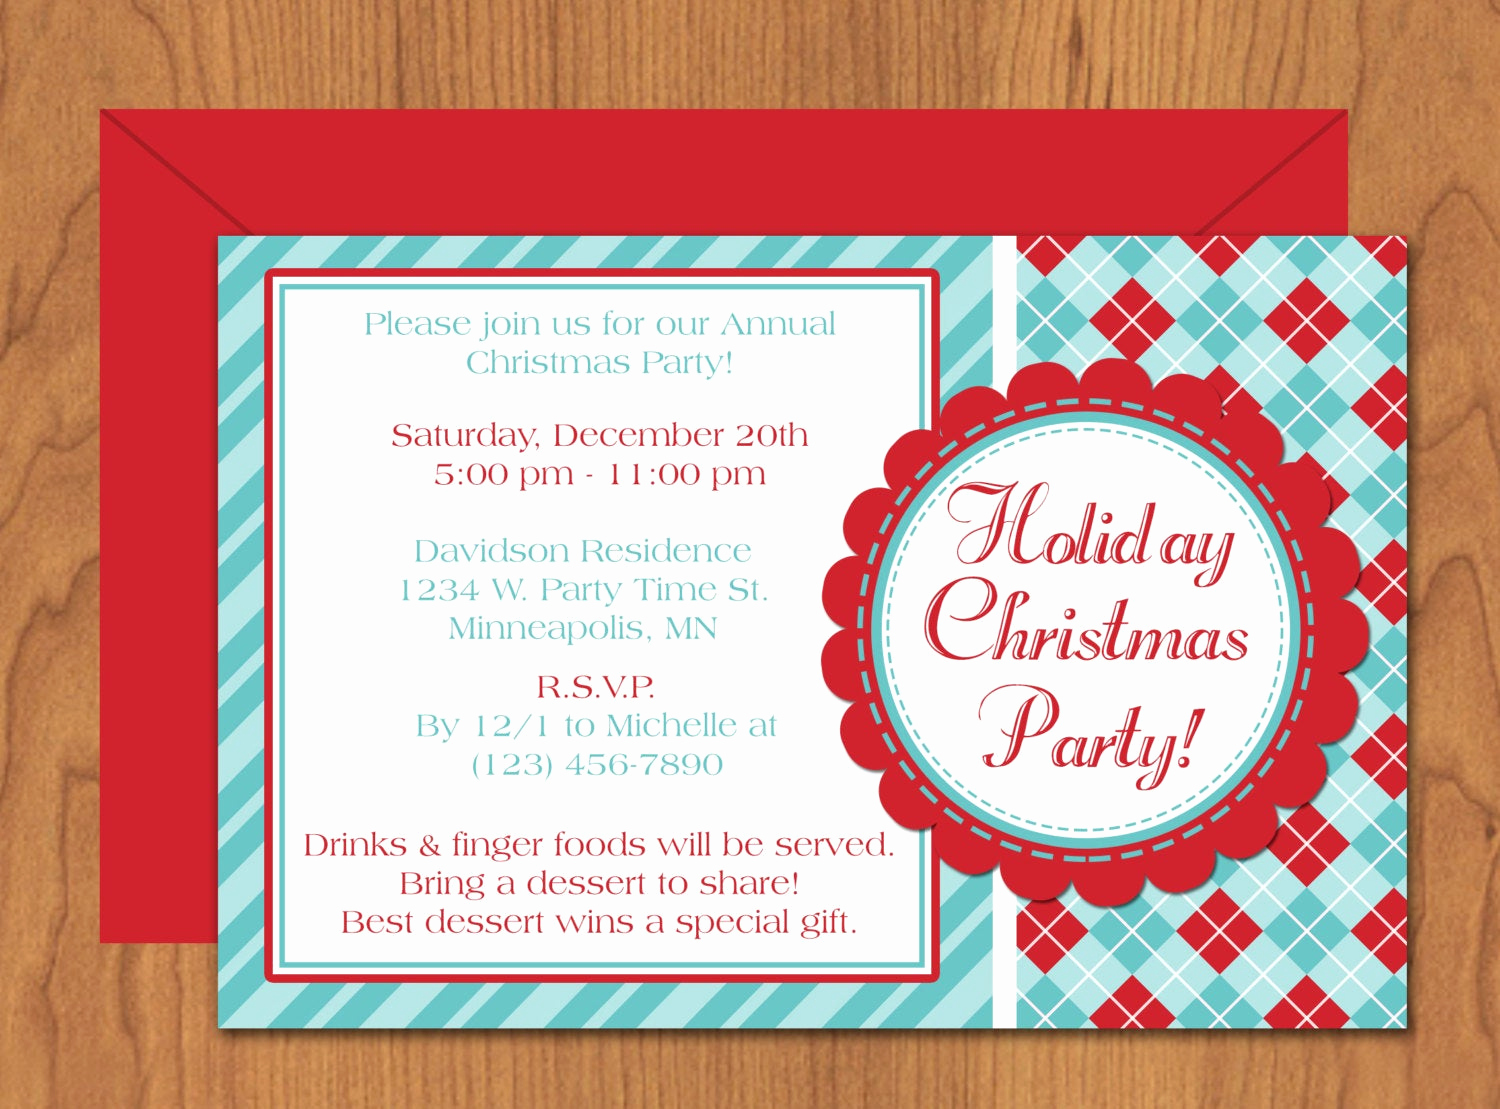 Holiday Party Invitation Template Fresh Christmas Party Invitation Editable Template Microsoft